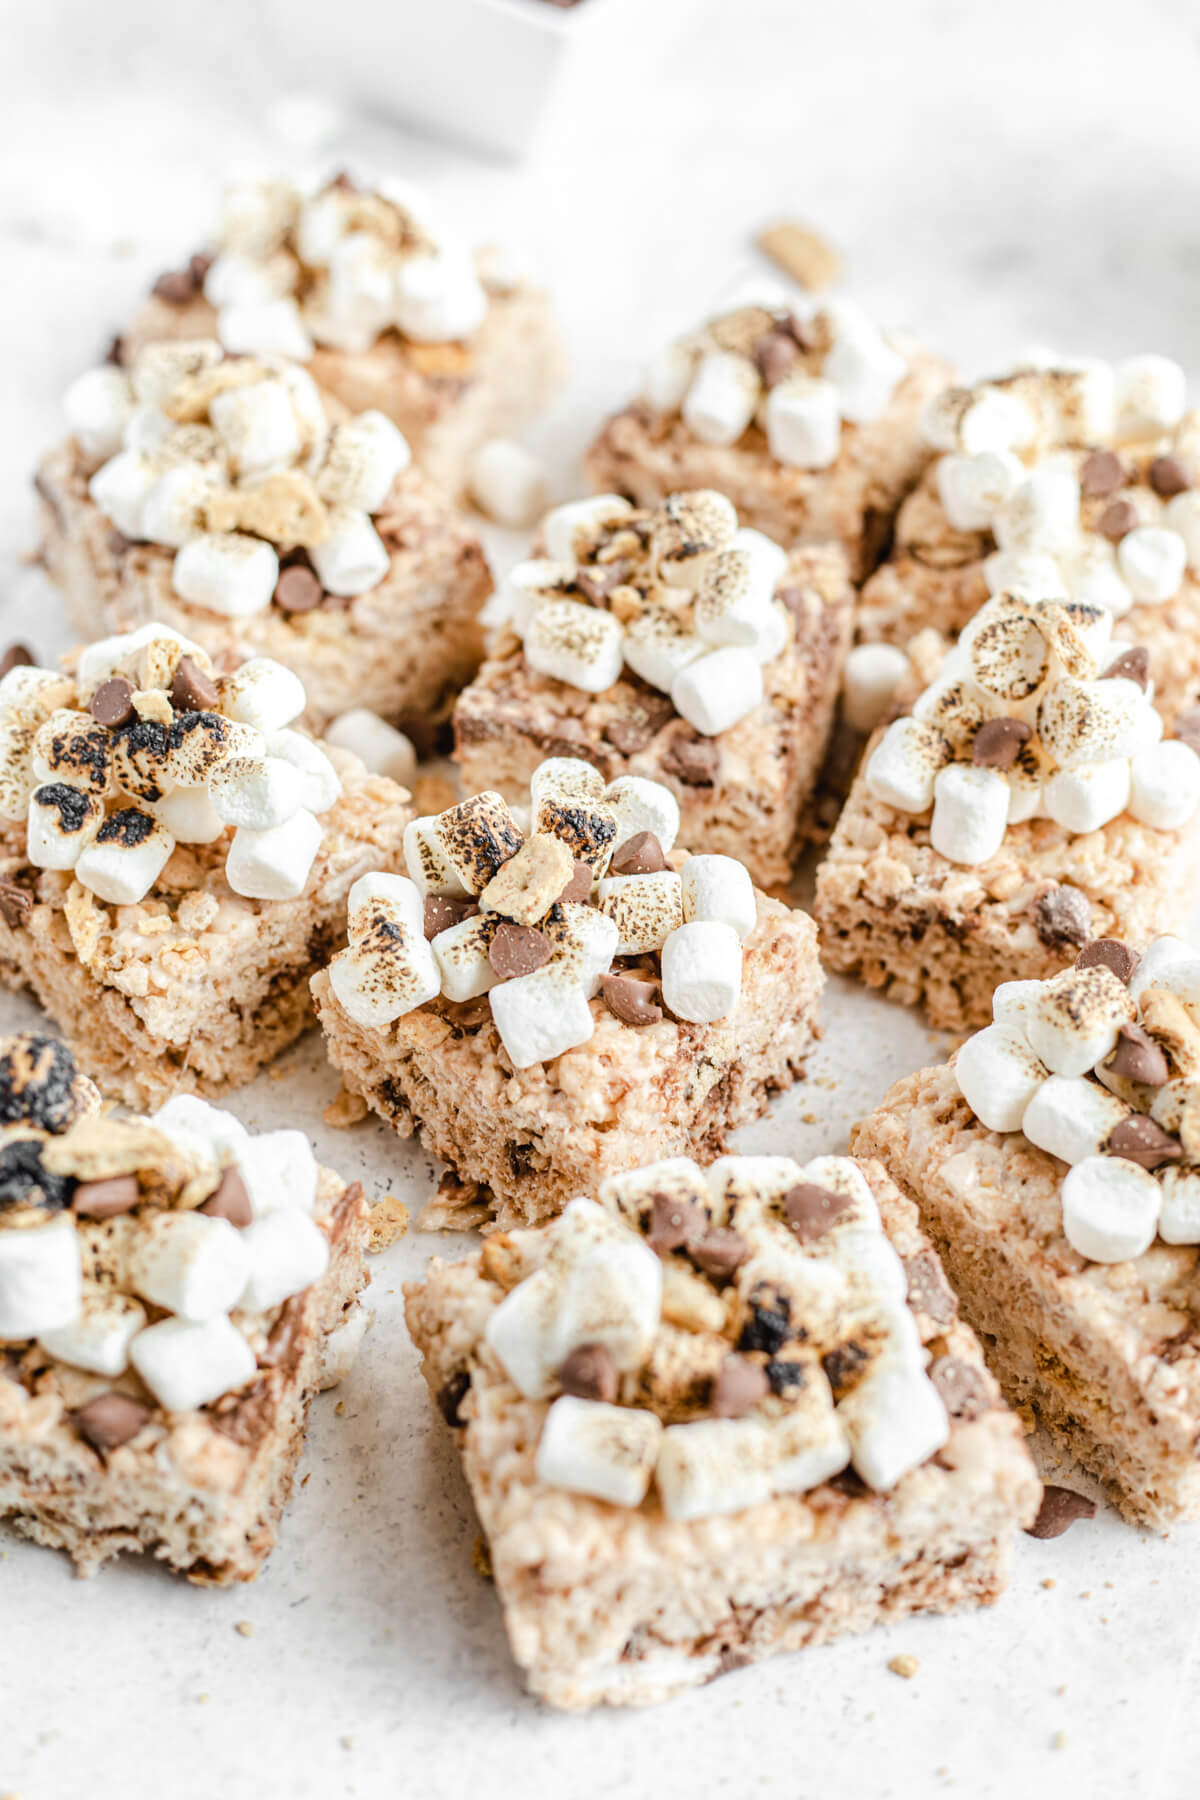 marshmallow, chocolate chip and graham cracker topped Rice Krispie treat bars